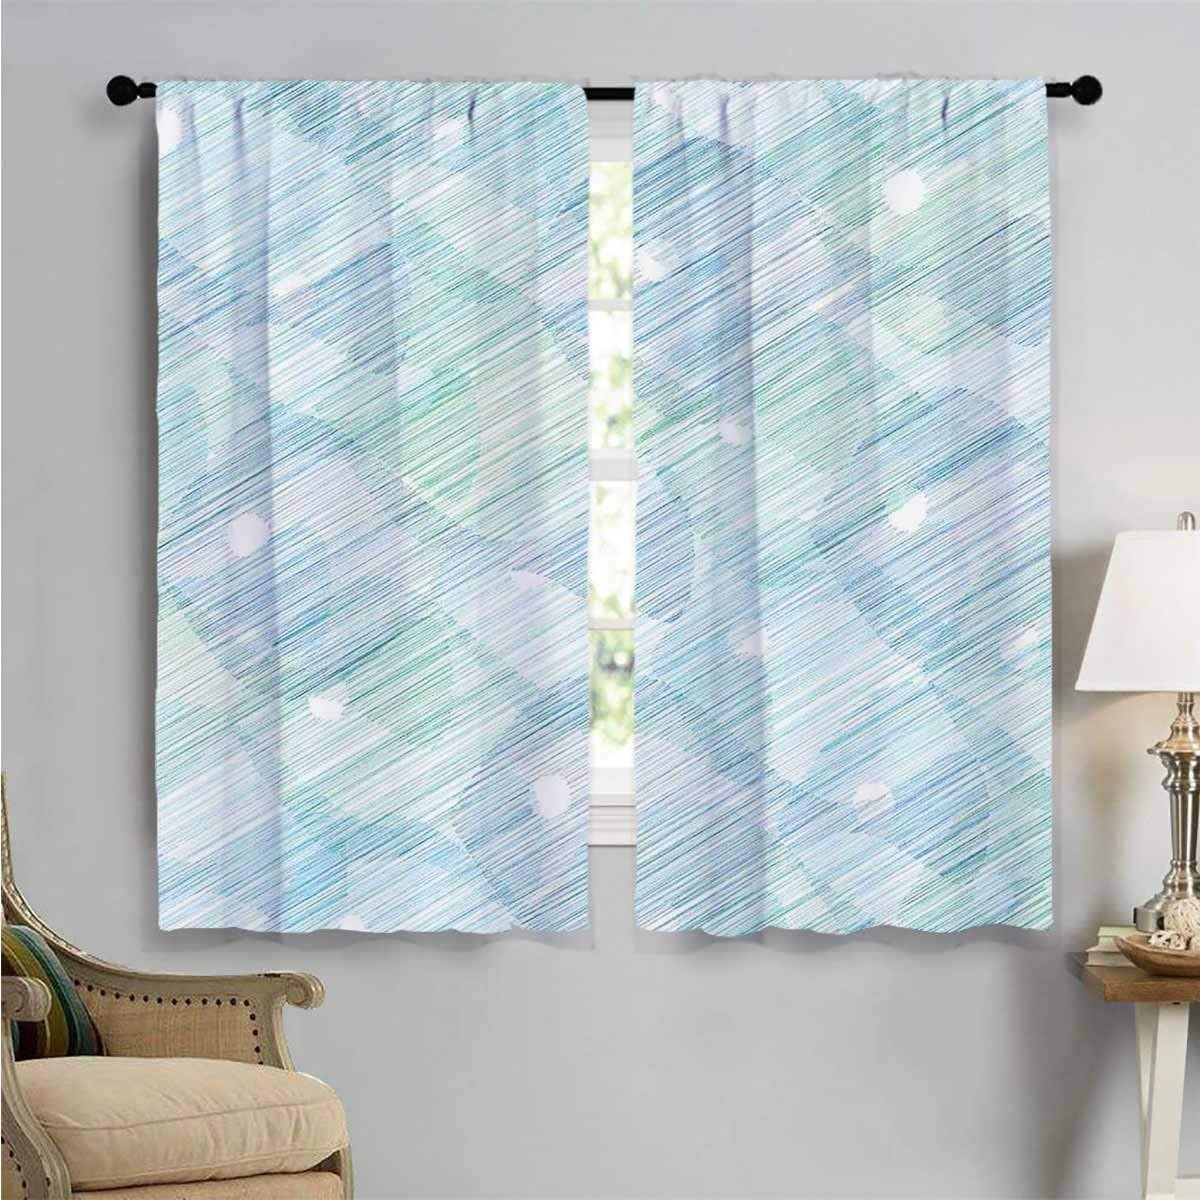 Window Curtain Drape low-pricing Modern Image by Curtains Decor Animer and price revision W6 Stripes